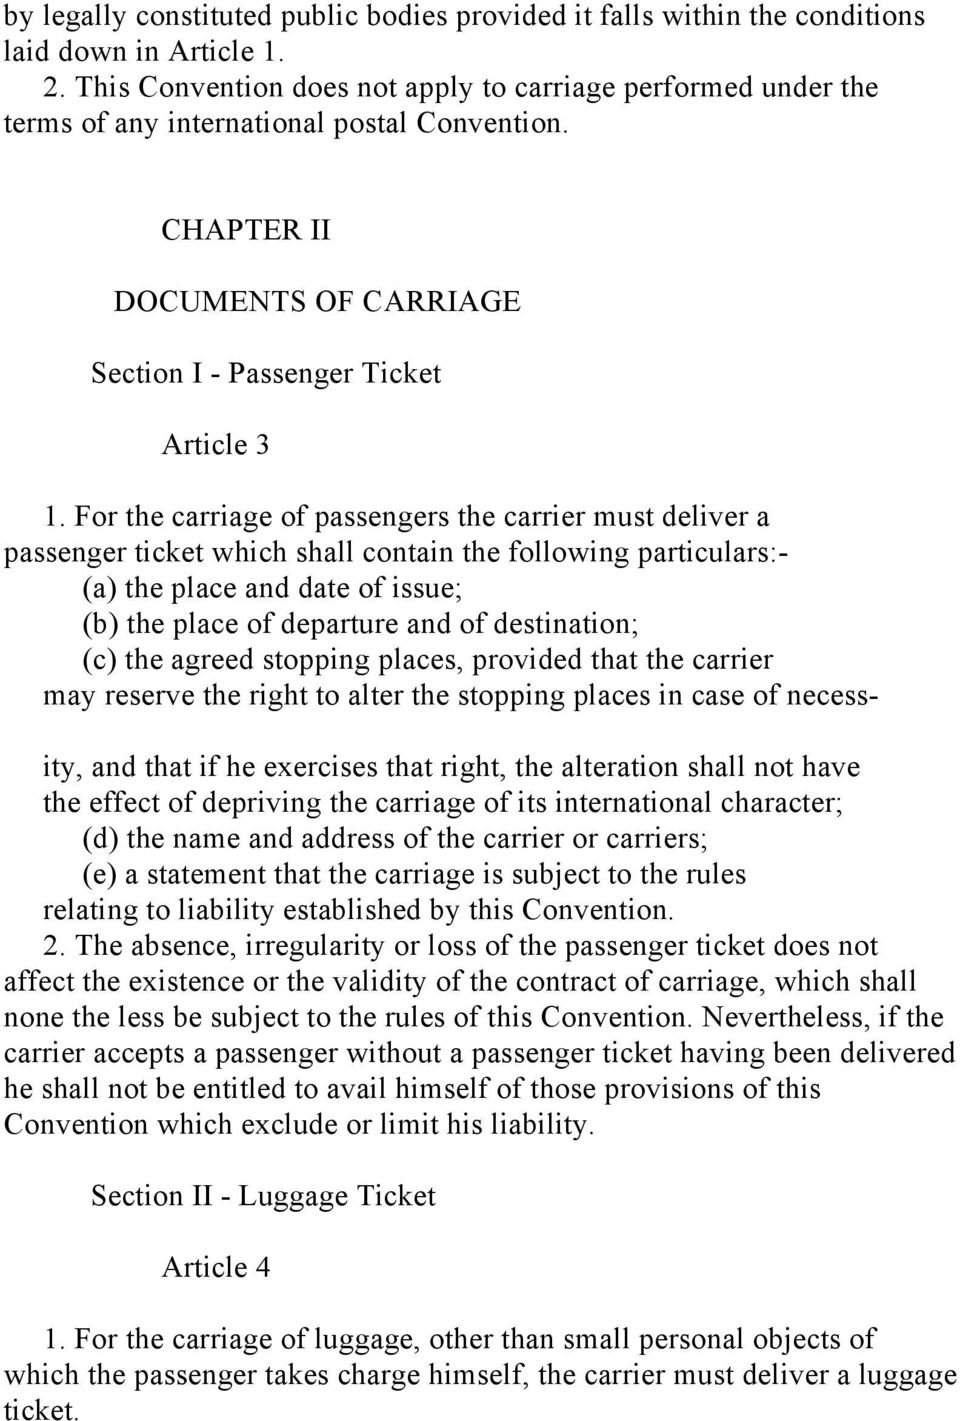 For the carriage of passengers the carrier must deliver a passenger ticket which shall contain the following particulars:- (a) the place and date of issue; (b) the place of departure and of